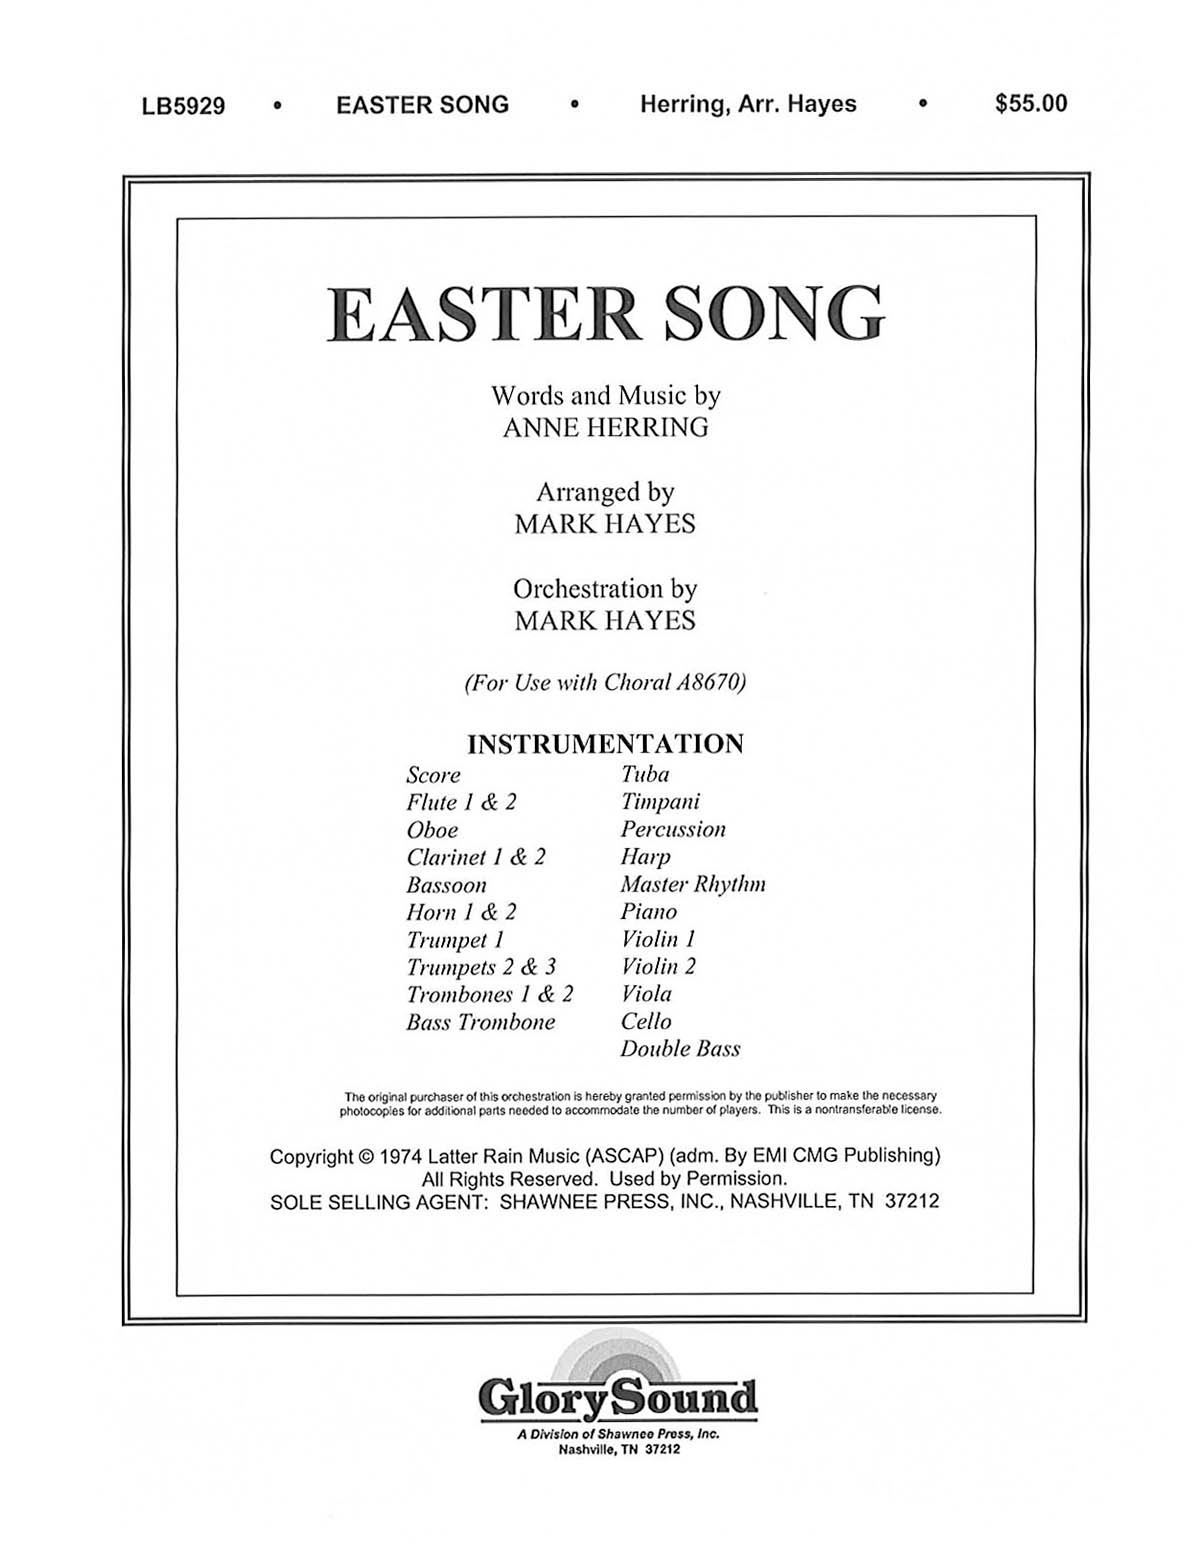 Anne Herring: Easter Song: Orchestra: Parts